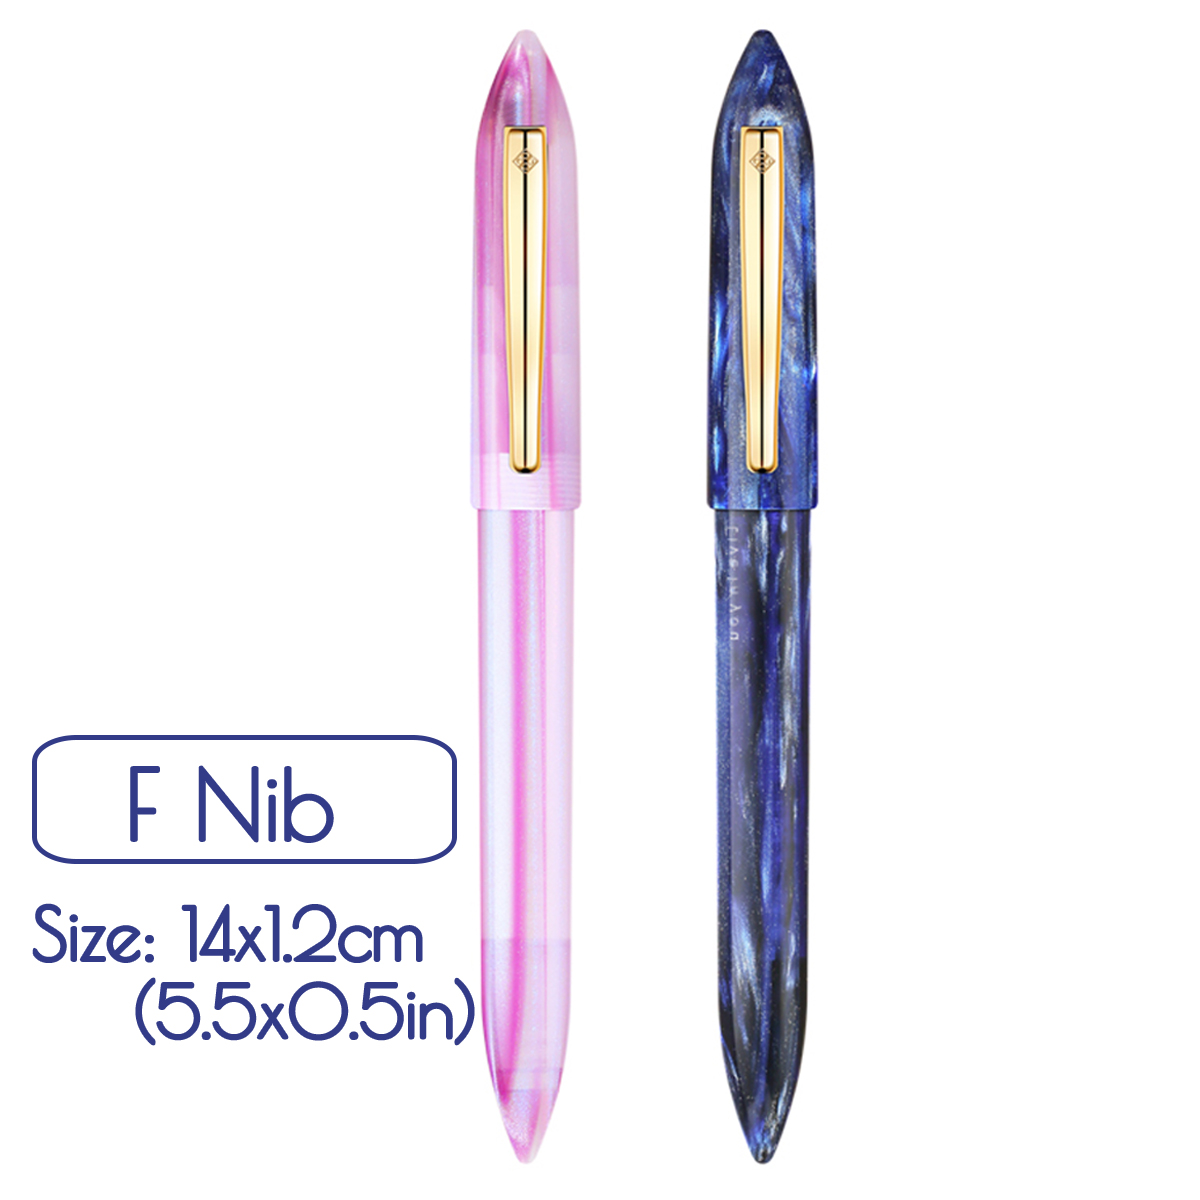 KICUTE F Nib Business Fountain Pen Resin Acetate Pen With Gift Box For Business Christmas Gift Wedding Signing MI TU Series emoshire wedding gift sets for man business collections chinese pen set with cufflinks wooden fountain pen and box pc009